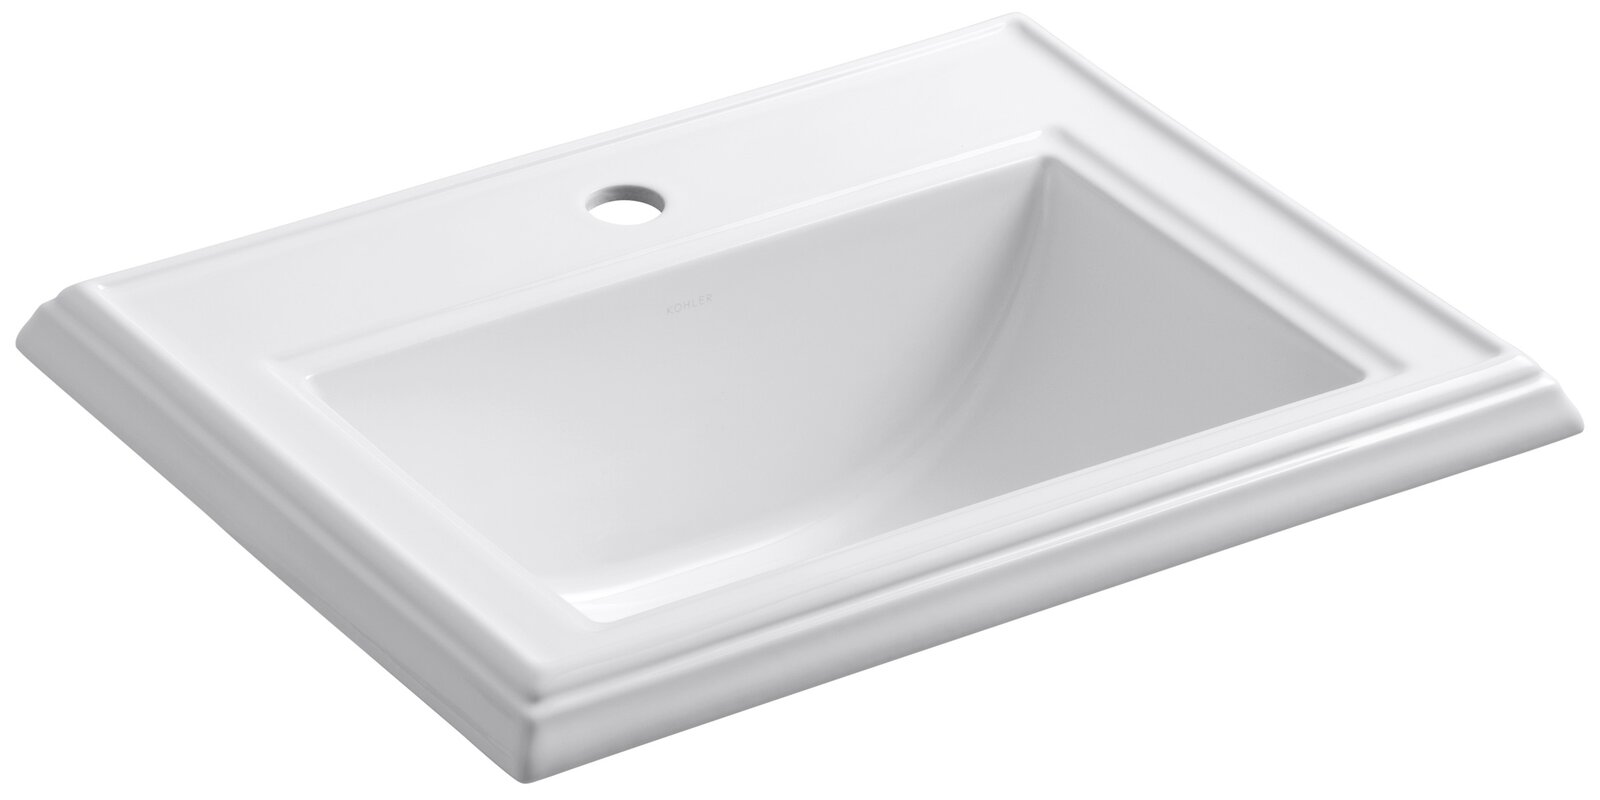 Kohler Memoirs Ceramic Rectangular Drop In Bathroom Sink With Overflow Reviews